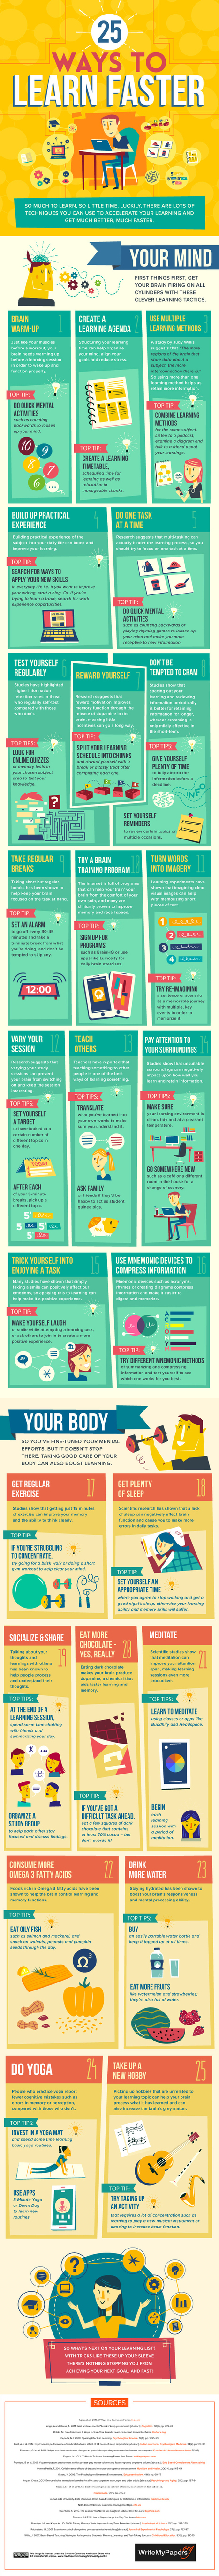 Trying to Learn to Market Your Business? Here's 25 Ways to Learn Faster [Infographic]   Top Tech News   Scoop.it